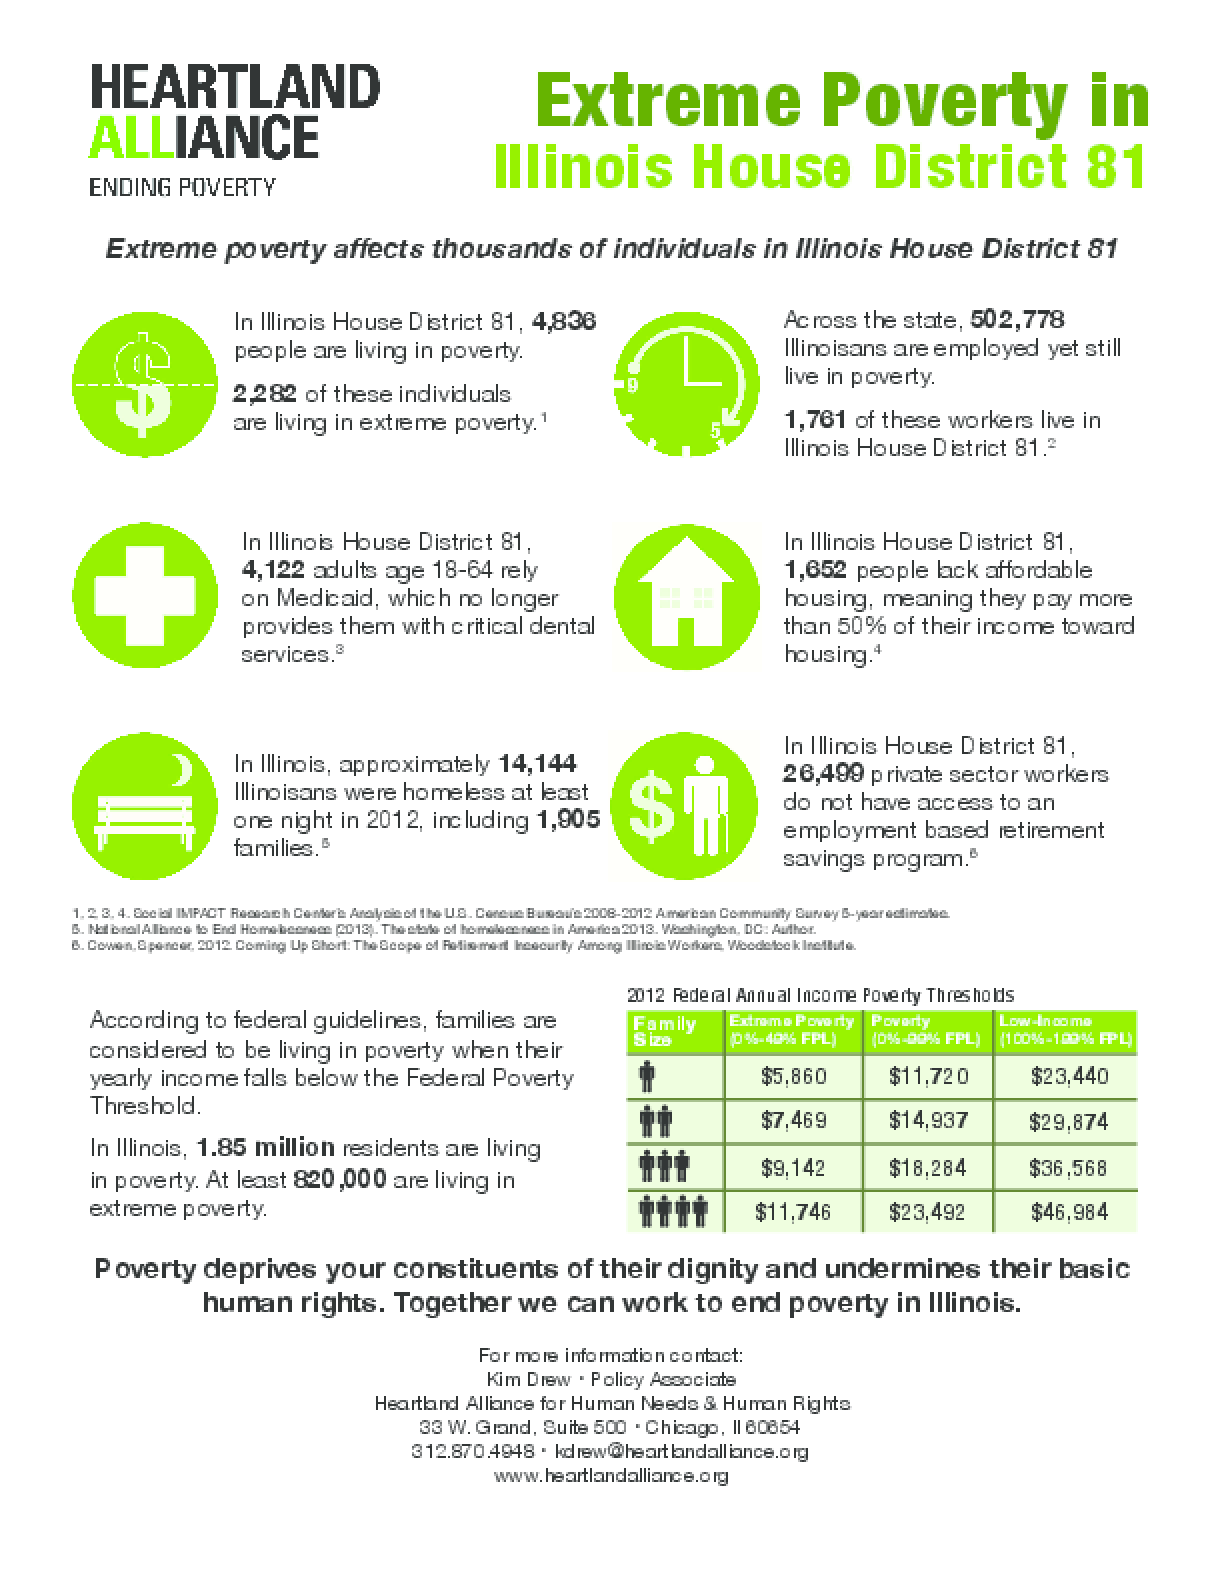 Poverty Fact Sheets for Illinois House District 81